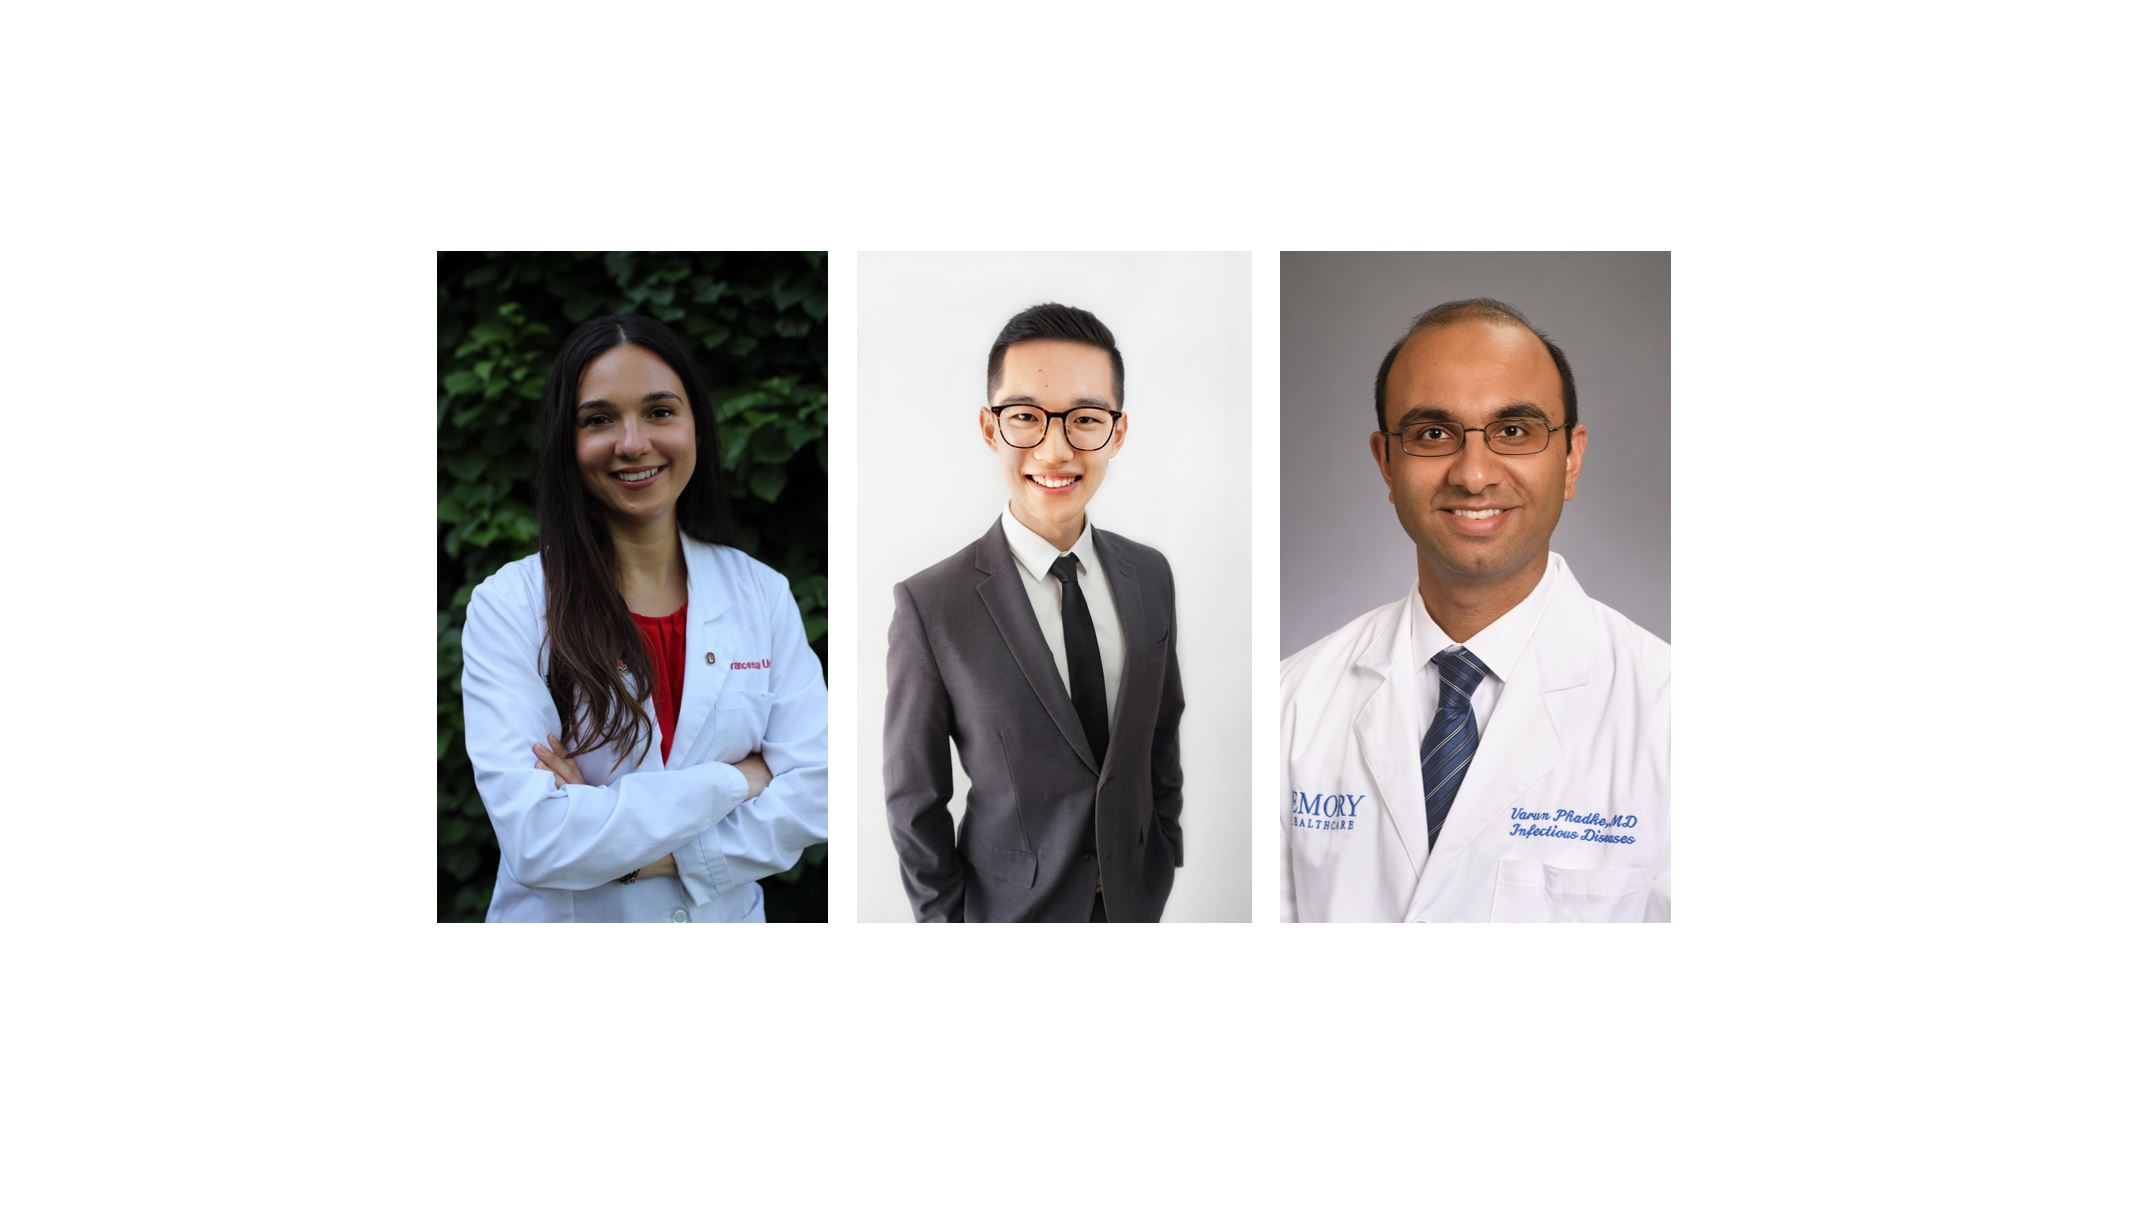 Episode 126: Human Dx Unknown with Arsalan & medical students, Alec and Fran – vision loss